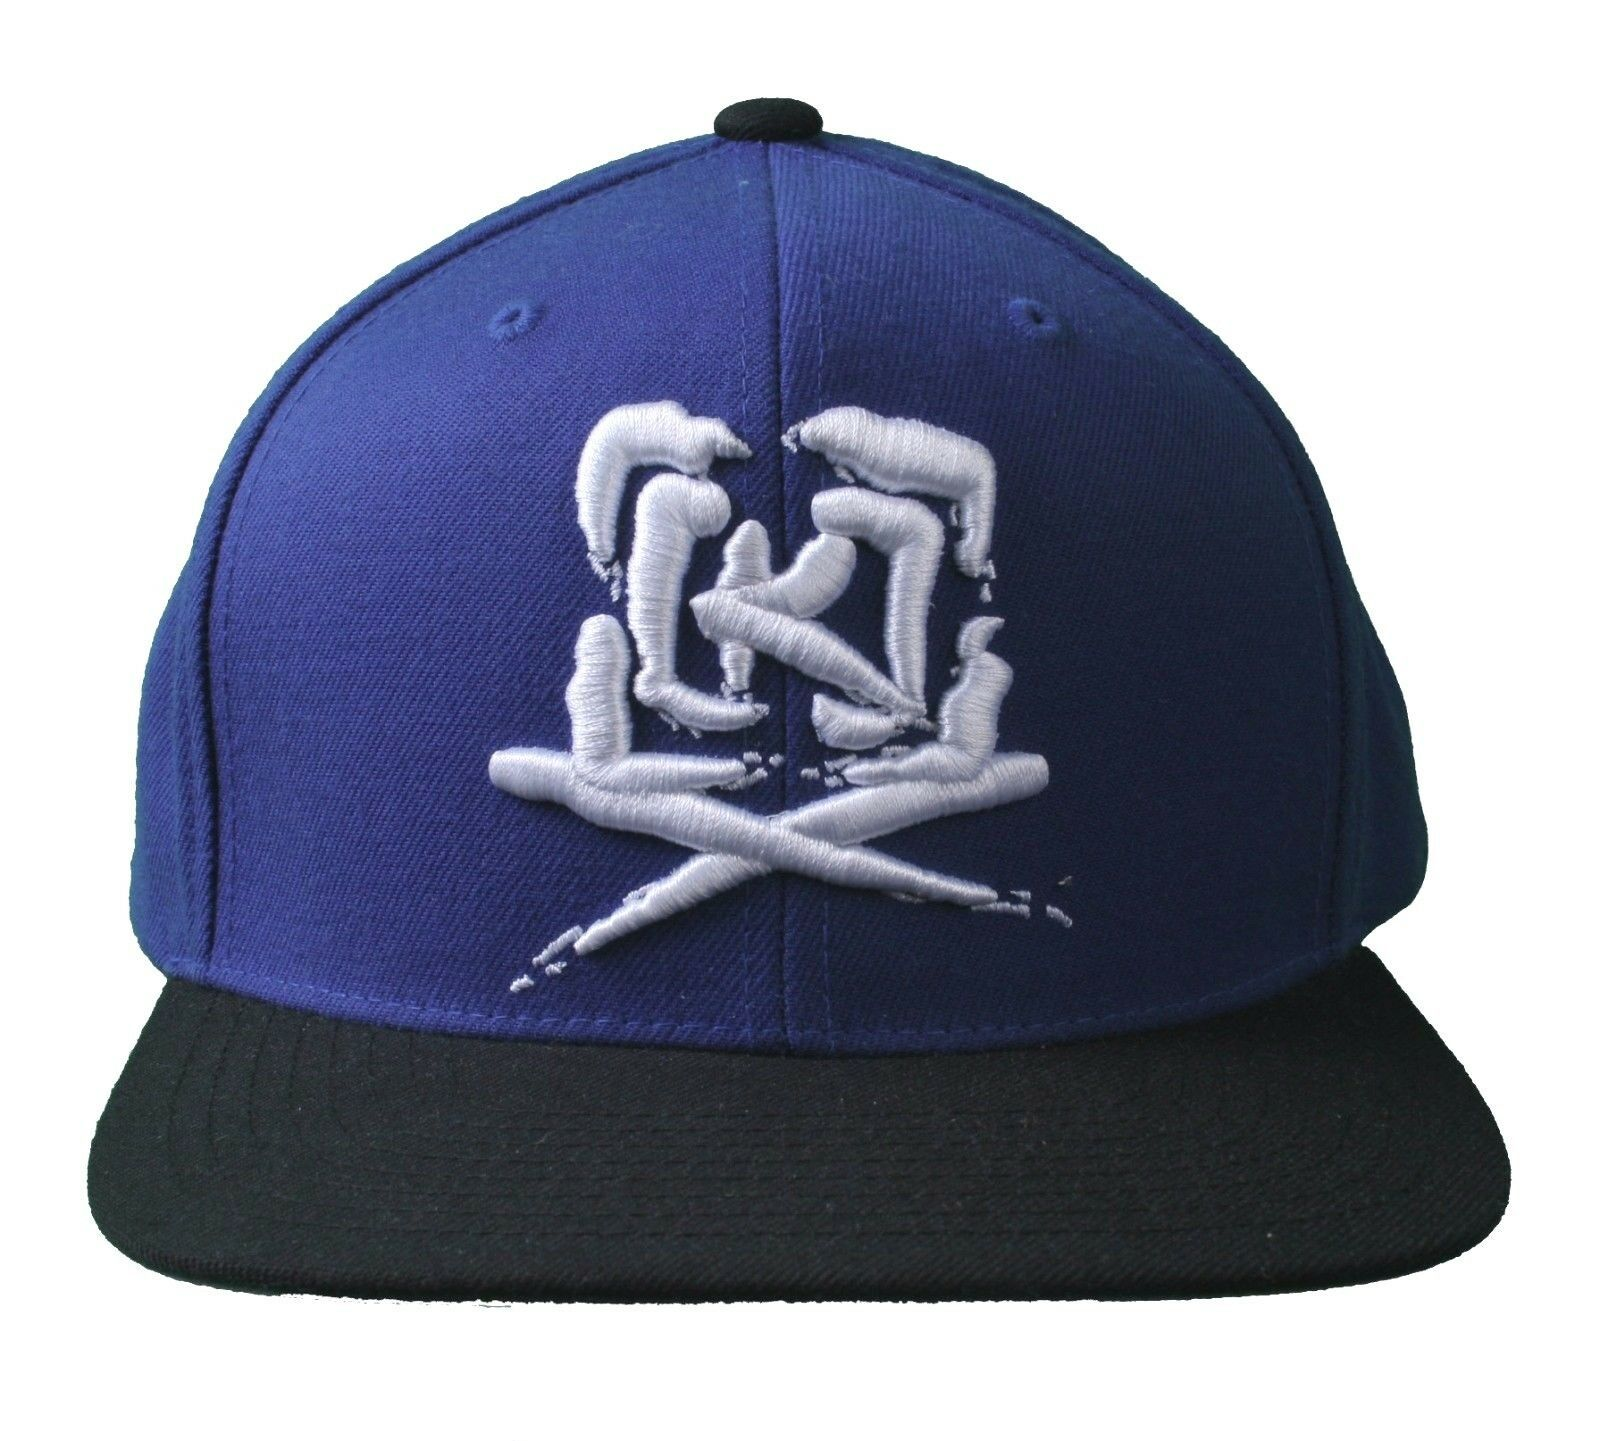 Kr3w Skateboarding Royal Blue Black Mark Starter Snapback Baseball Hat Cap NWT